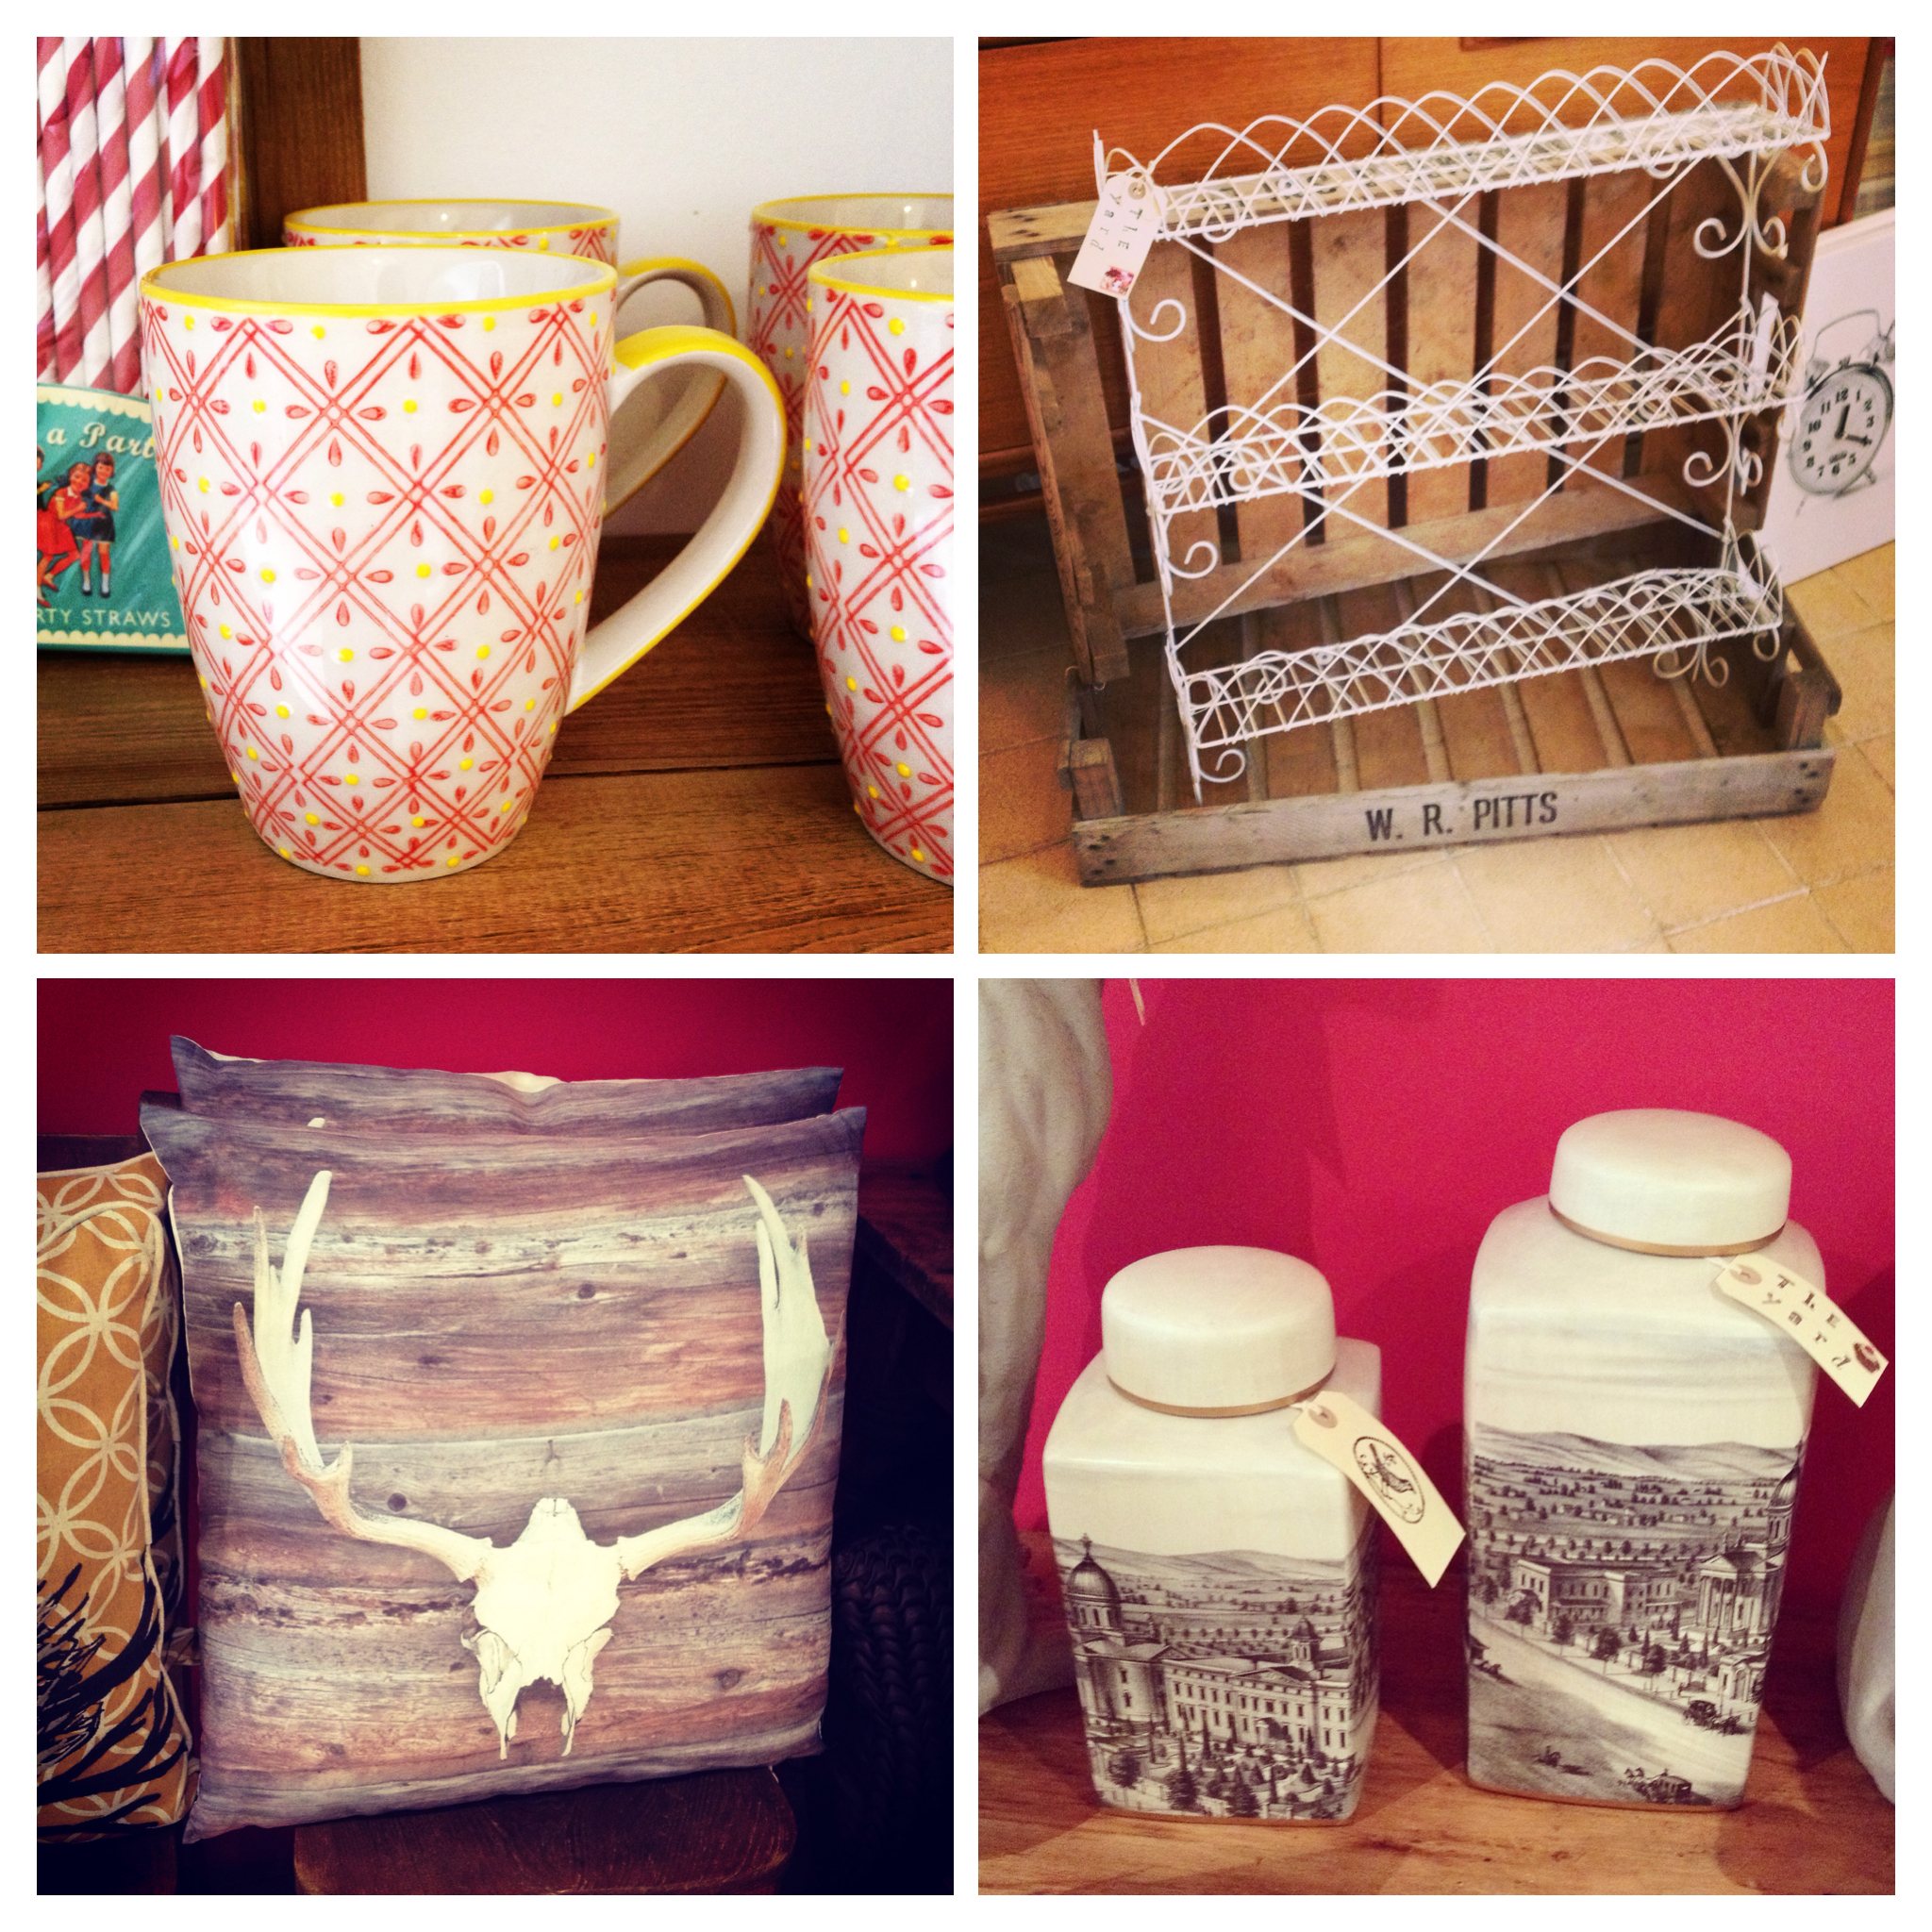 Cheerful mugs, wire wall rack, skull and wood cushion and city scene jars.